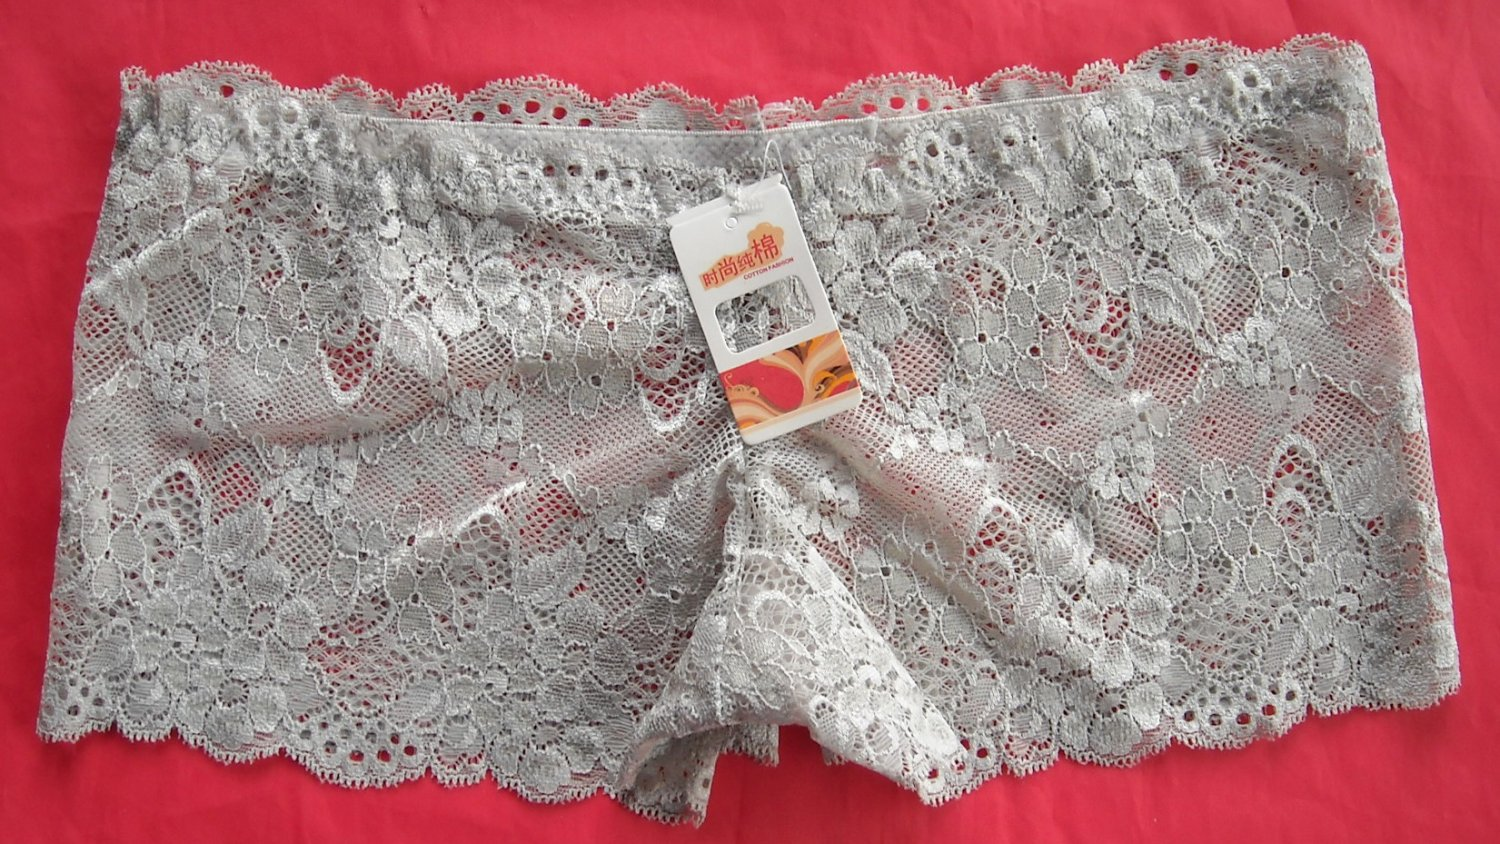 Lot of 3 womens Silver openwork lace Boyshorts intimates underwear panties size S NWT